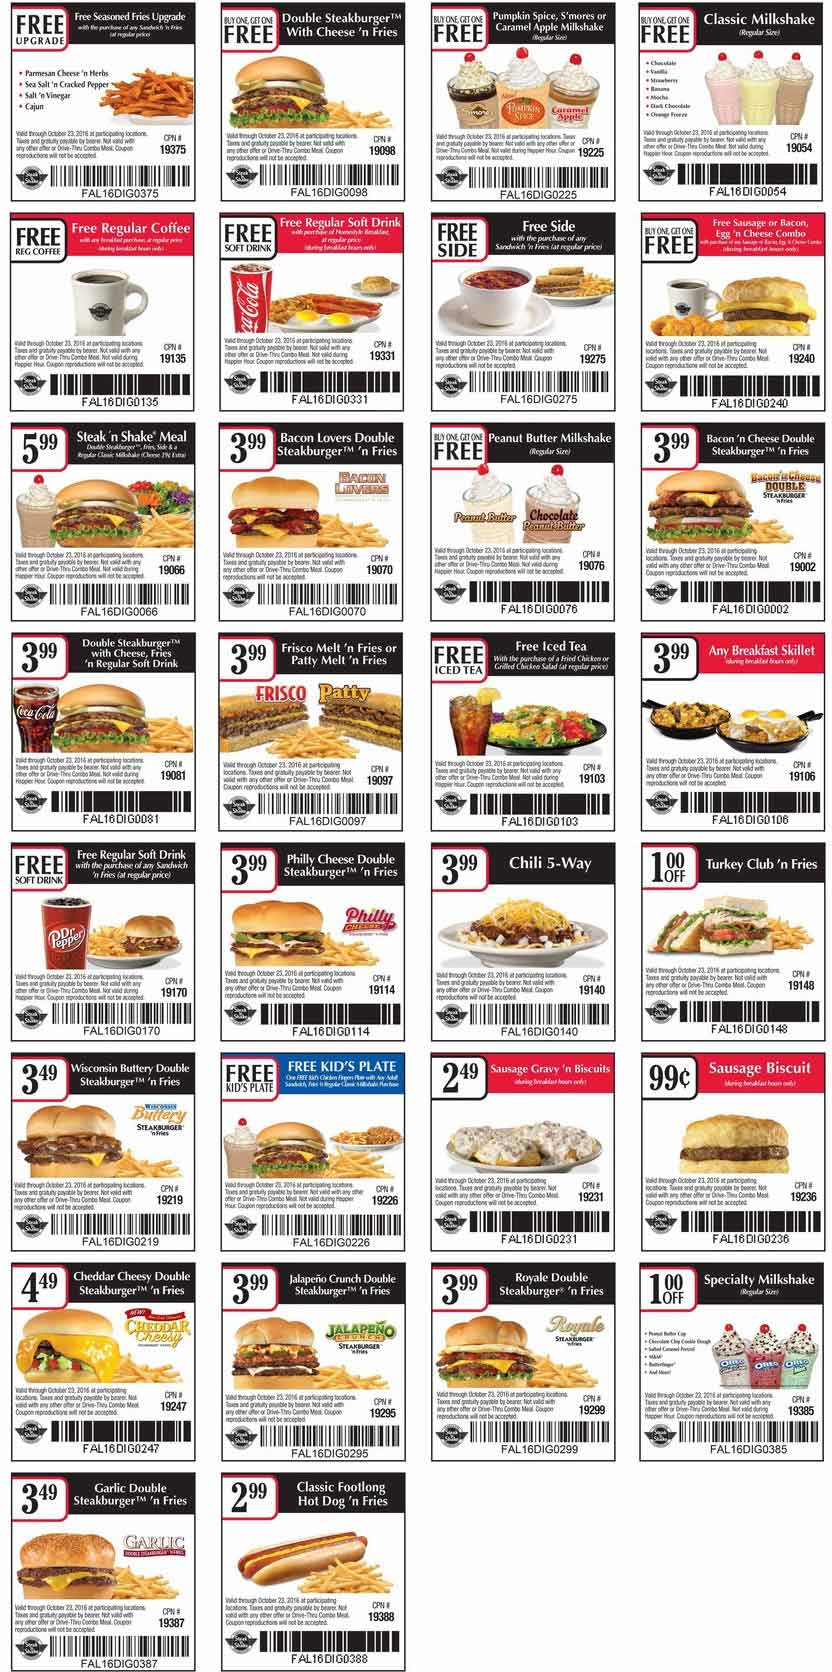 Steak n Shake Coupon March 2018 Second steakburger meal free & more at Steak N Shake